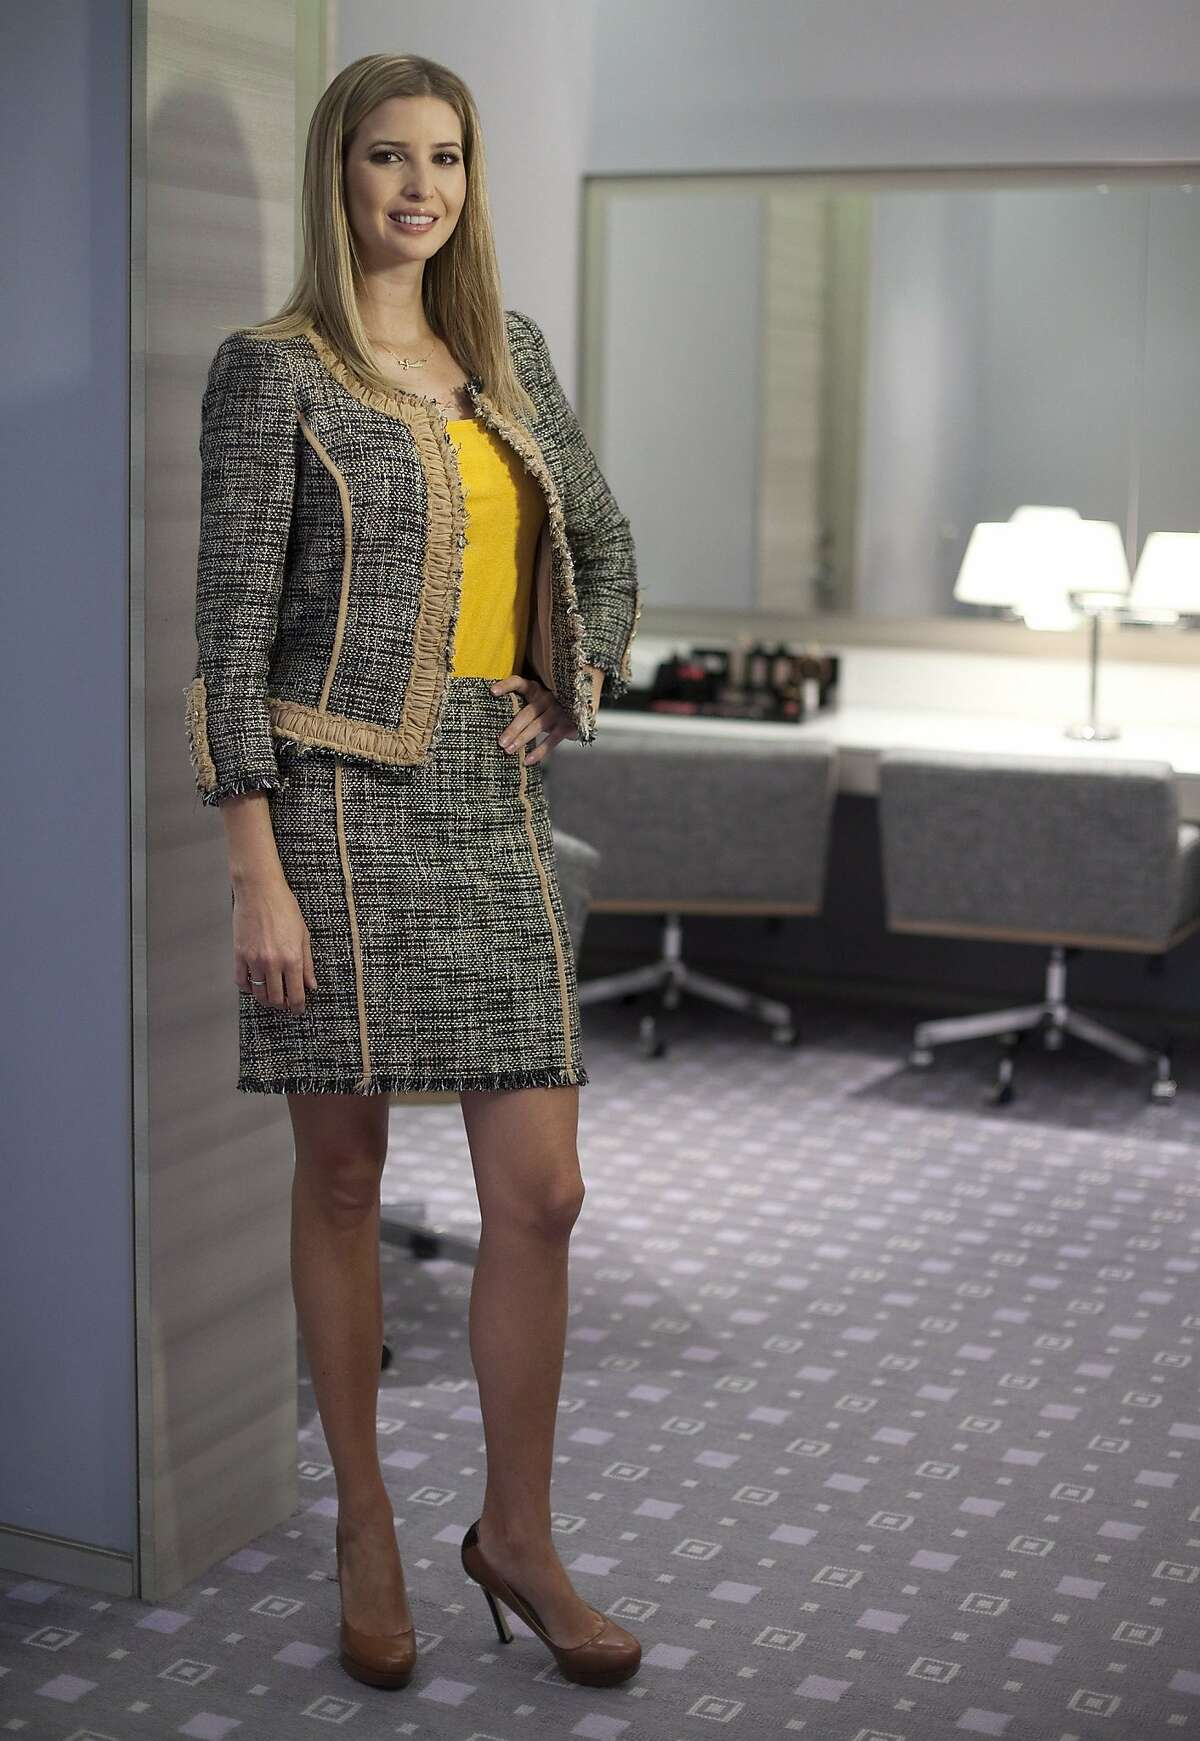 In this March 6, 2015, file photo, Ivanka Trump models an outfit following an interview to promote her clothing line in Toronto. Trump just announced that she'll be shuttering her namesake fashion brand following sluggish sales and a concerted consumer boycott.